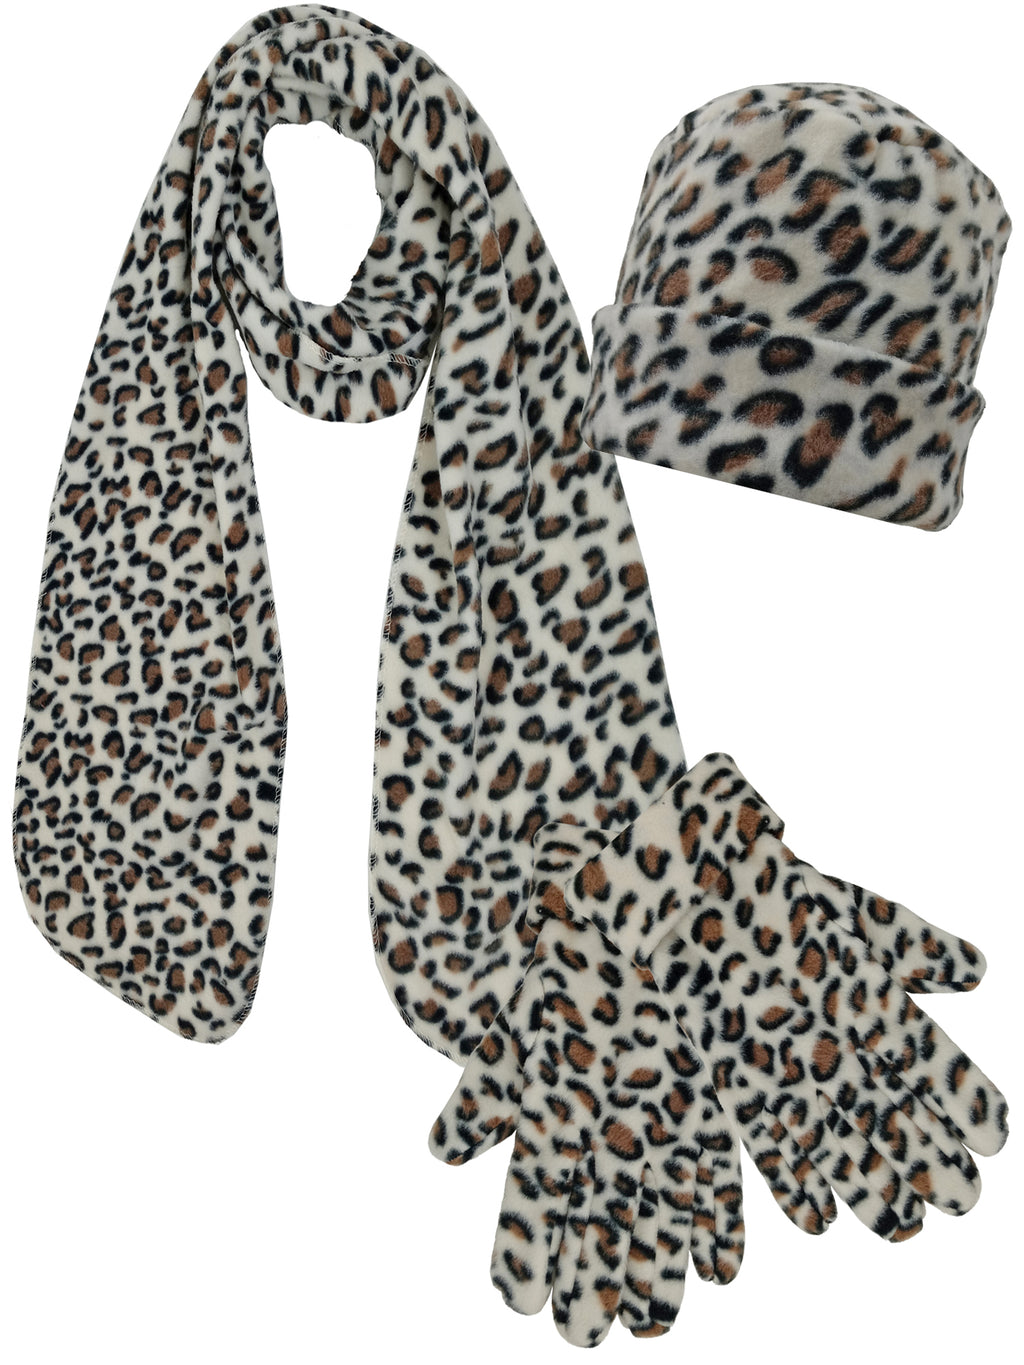 Cheetah Print Fleece 3 Piece Hat Scarf & Gloves Matching Set